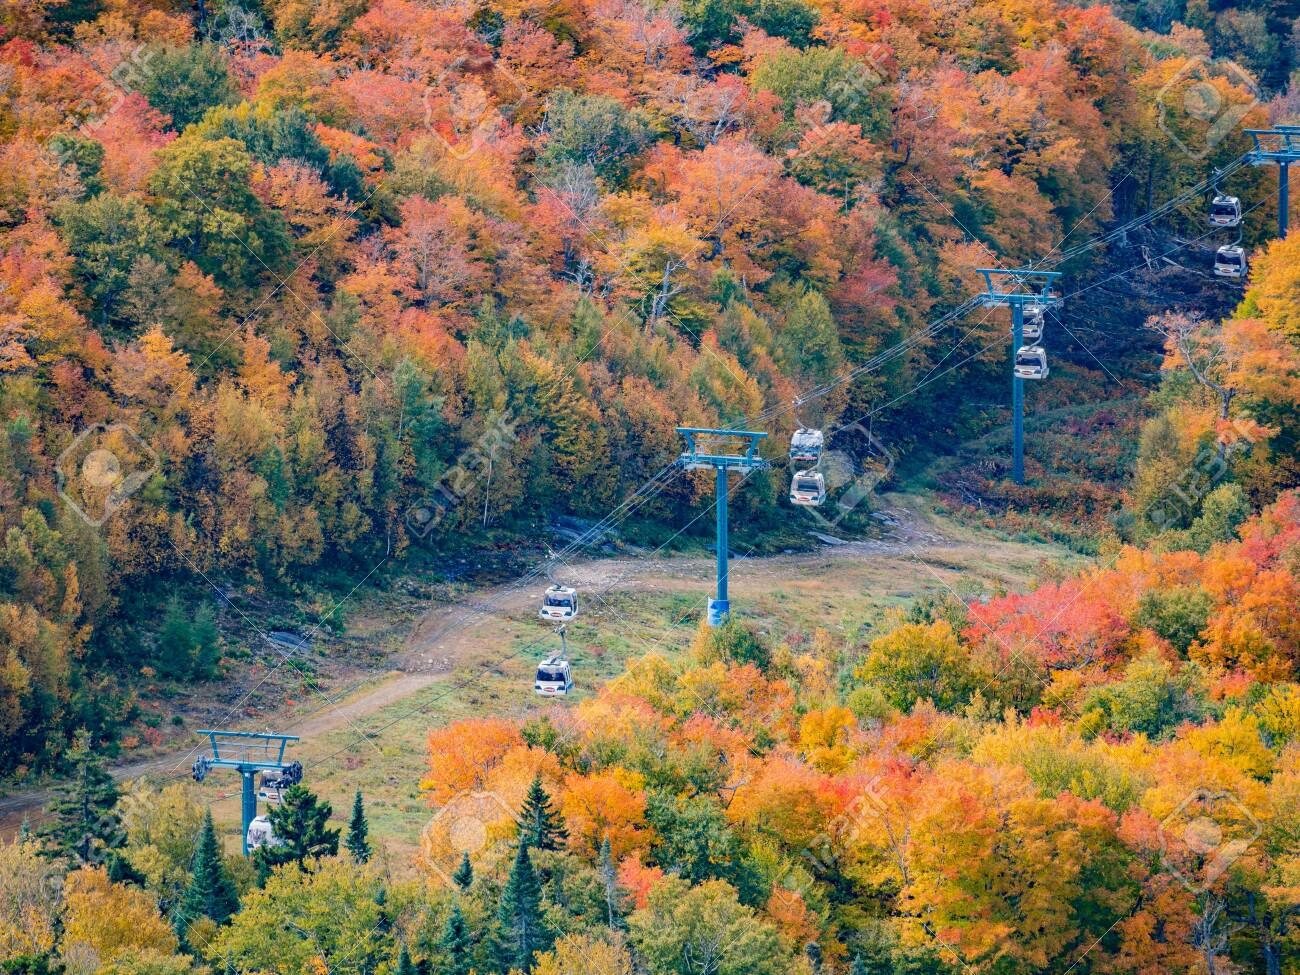 Aerial view of Mont-Tremblant National Park in fall color at Quebec, Canada - 116682703